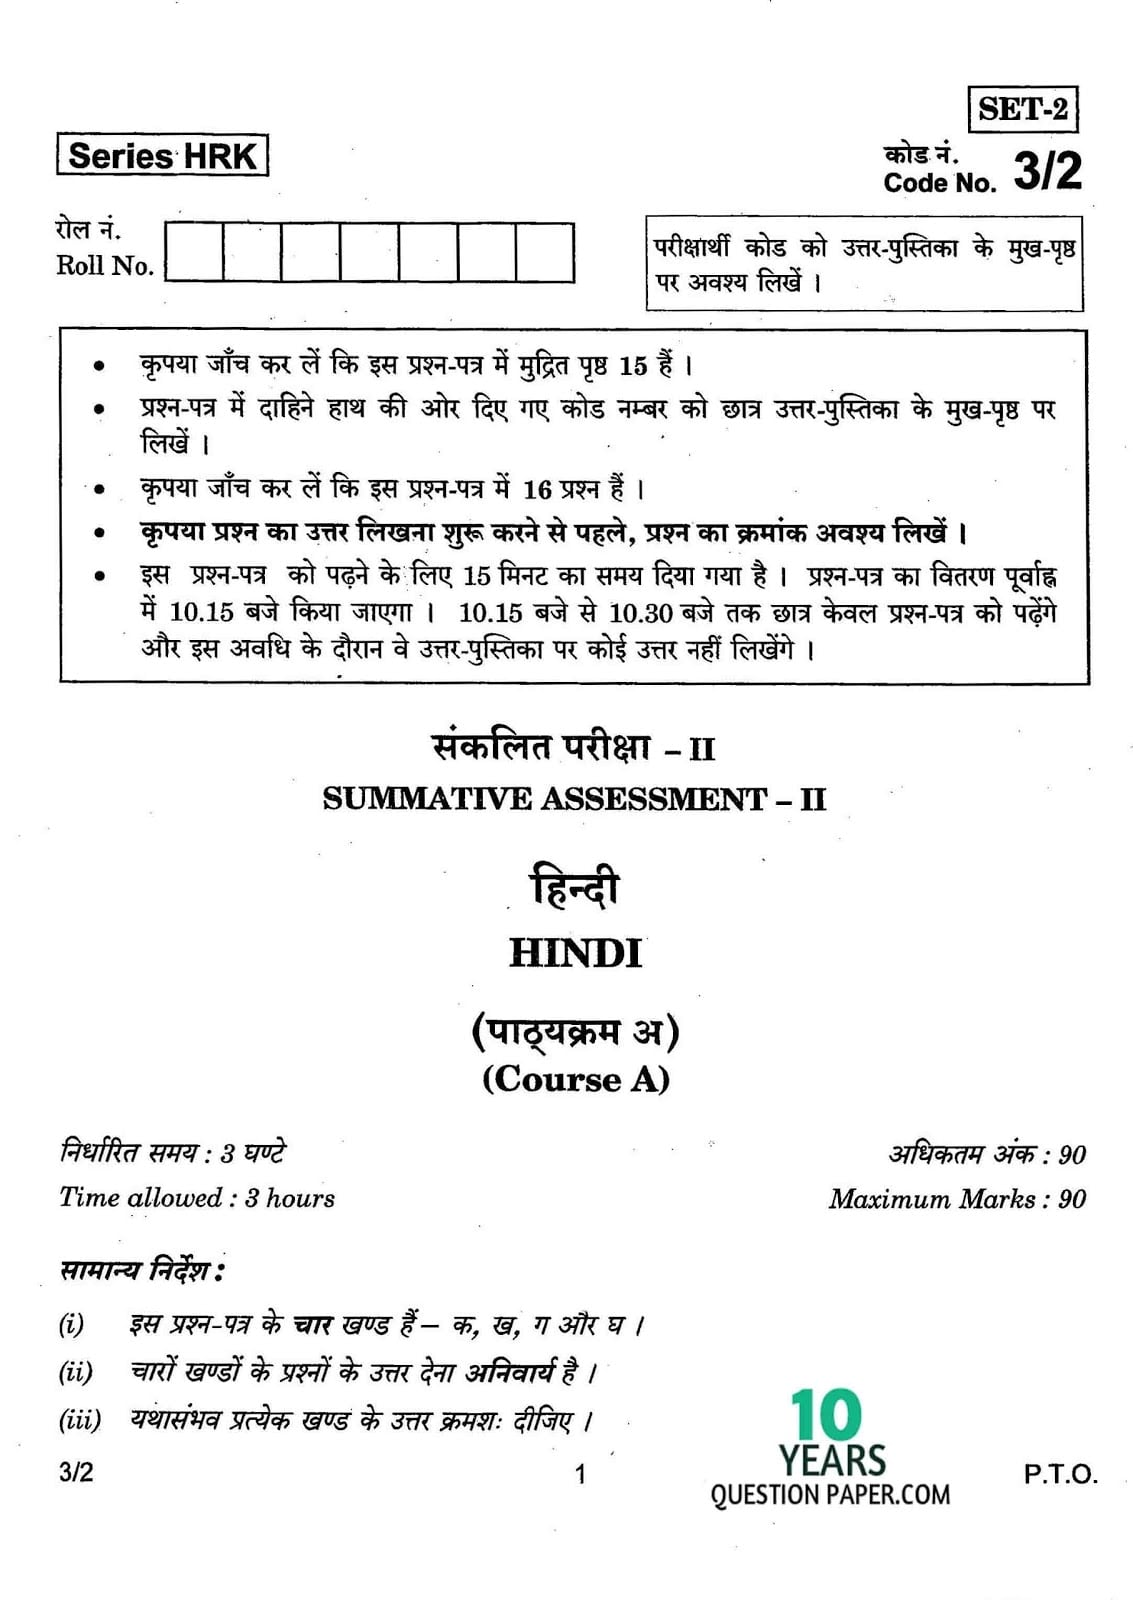 CBSE Class 10 Hindi 2017 Question Paper